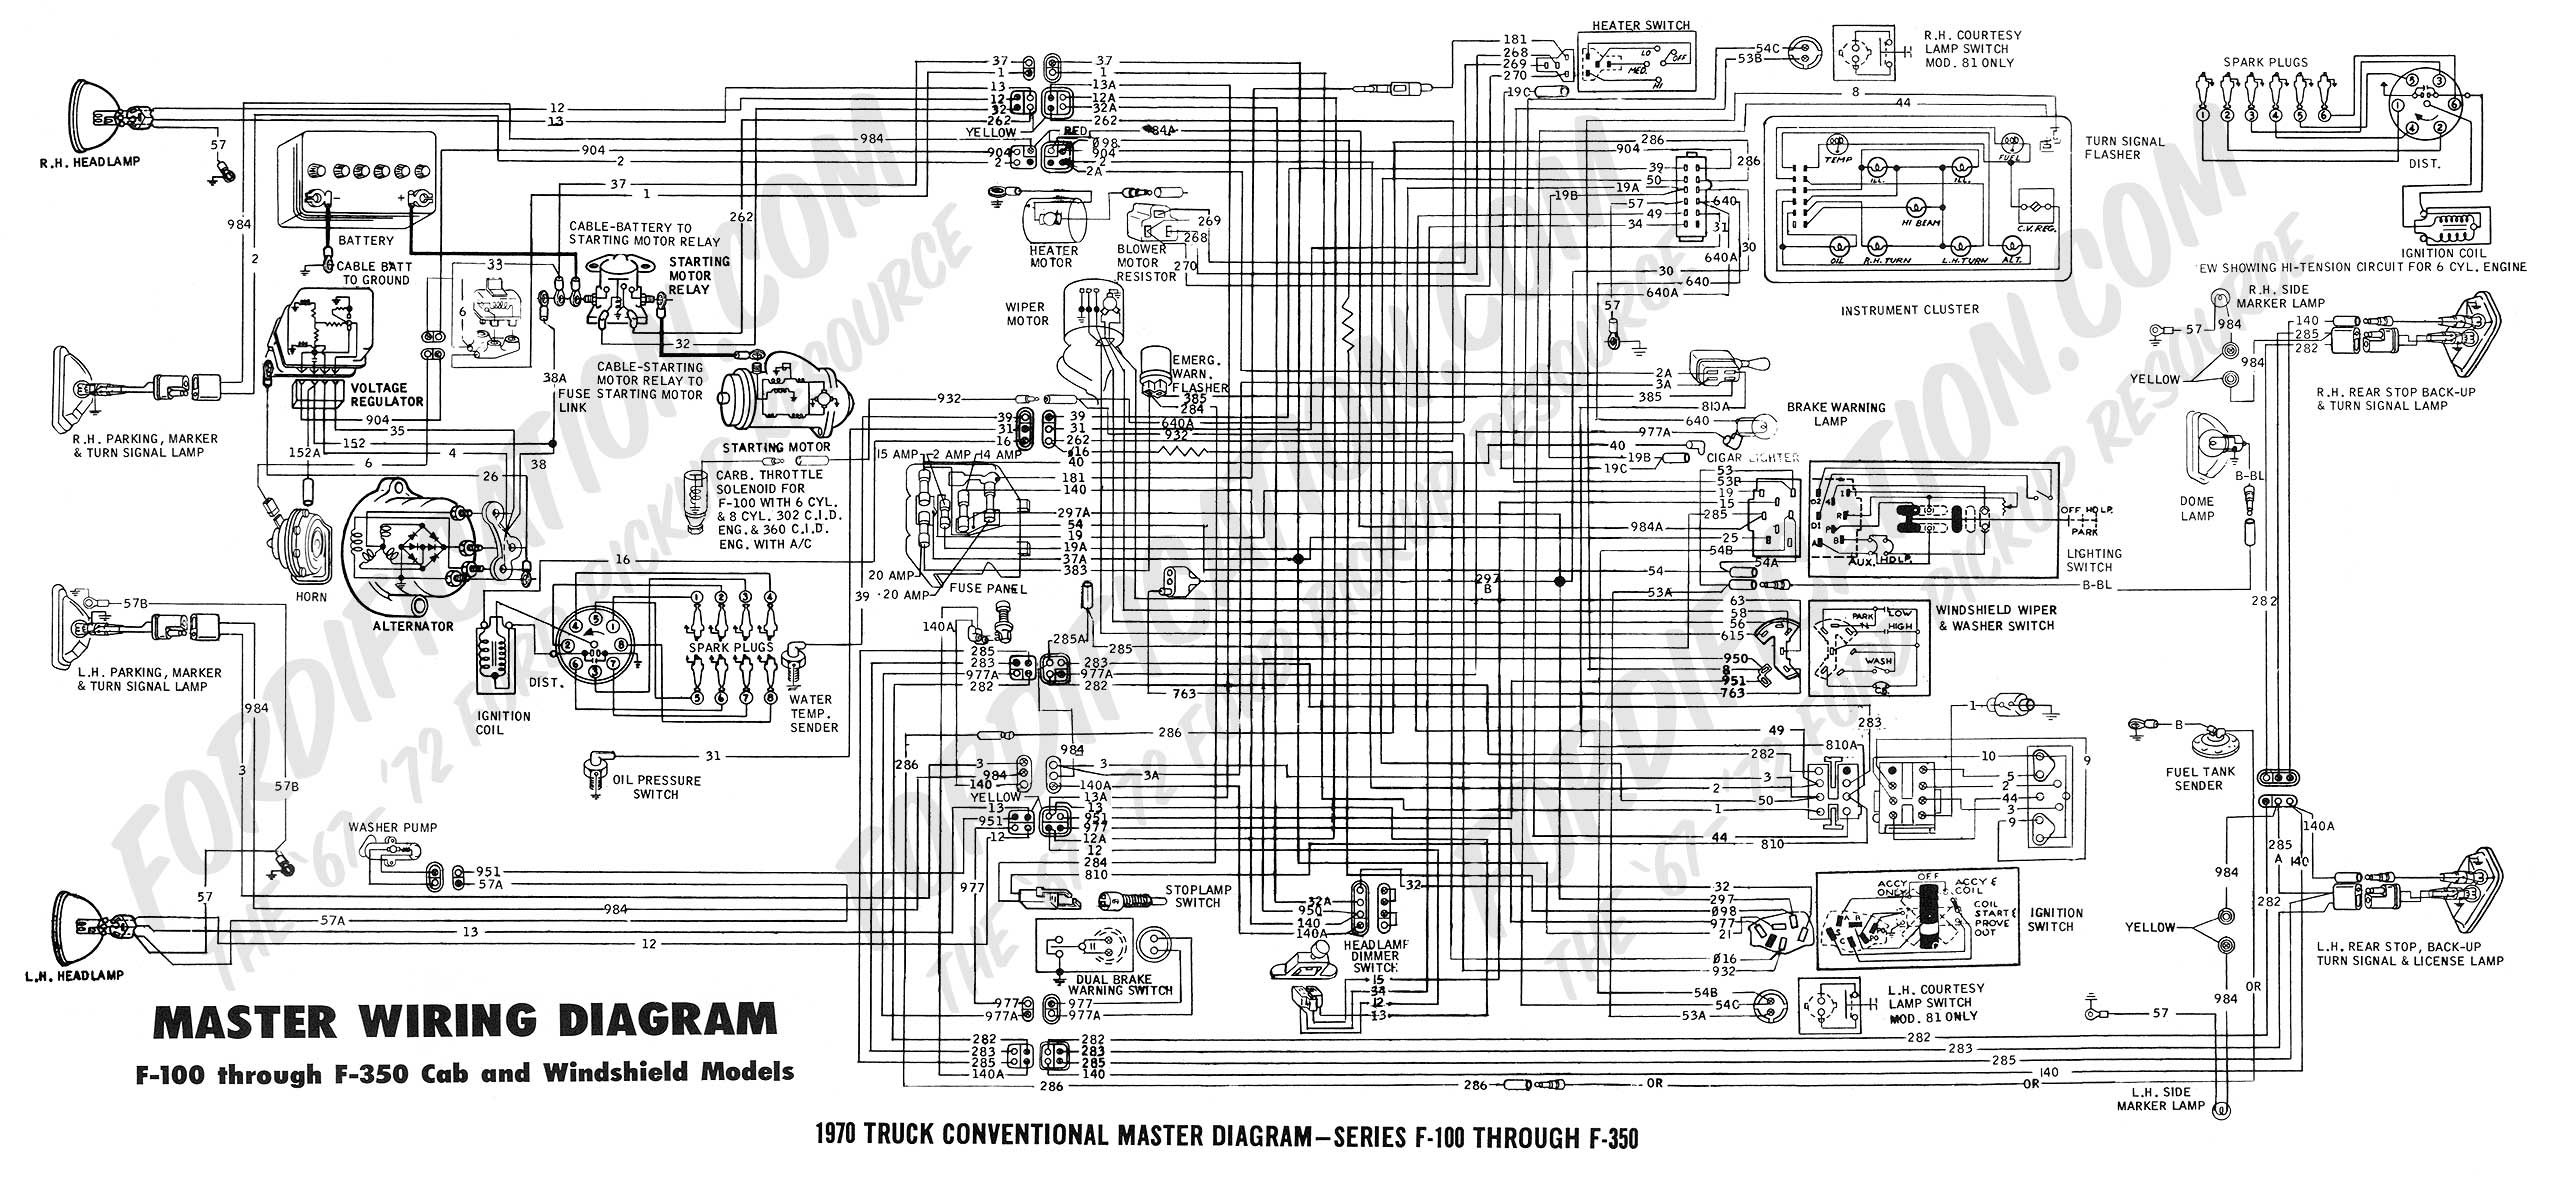 wiring diagram 70_master wiring diagram for 2007 freightliner columbia ireleast Wiring Harness Diagram at mifinder.co